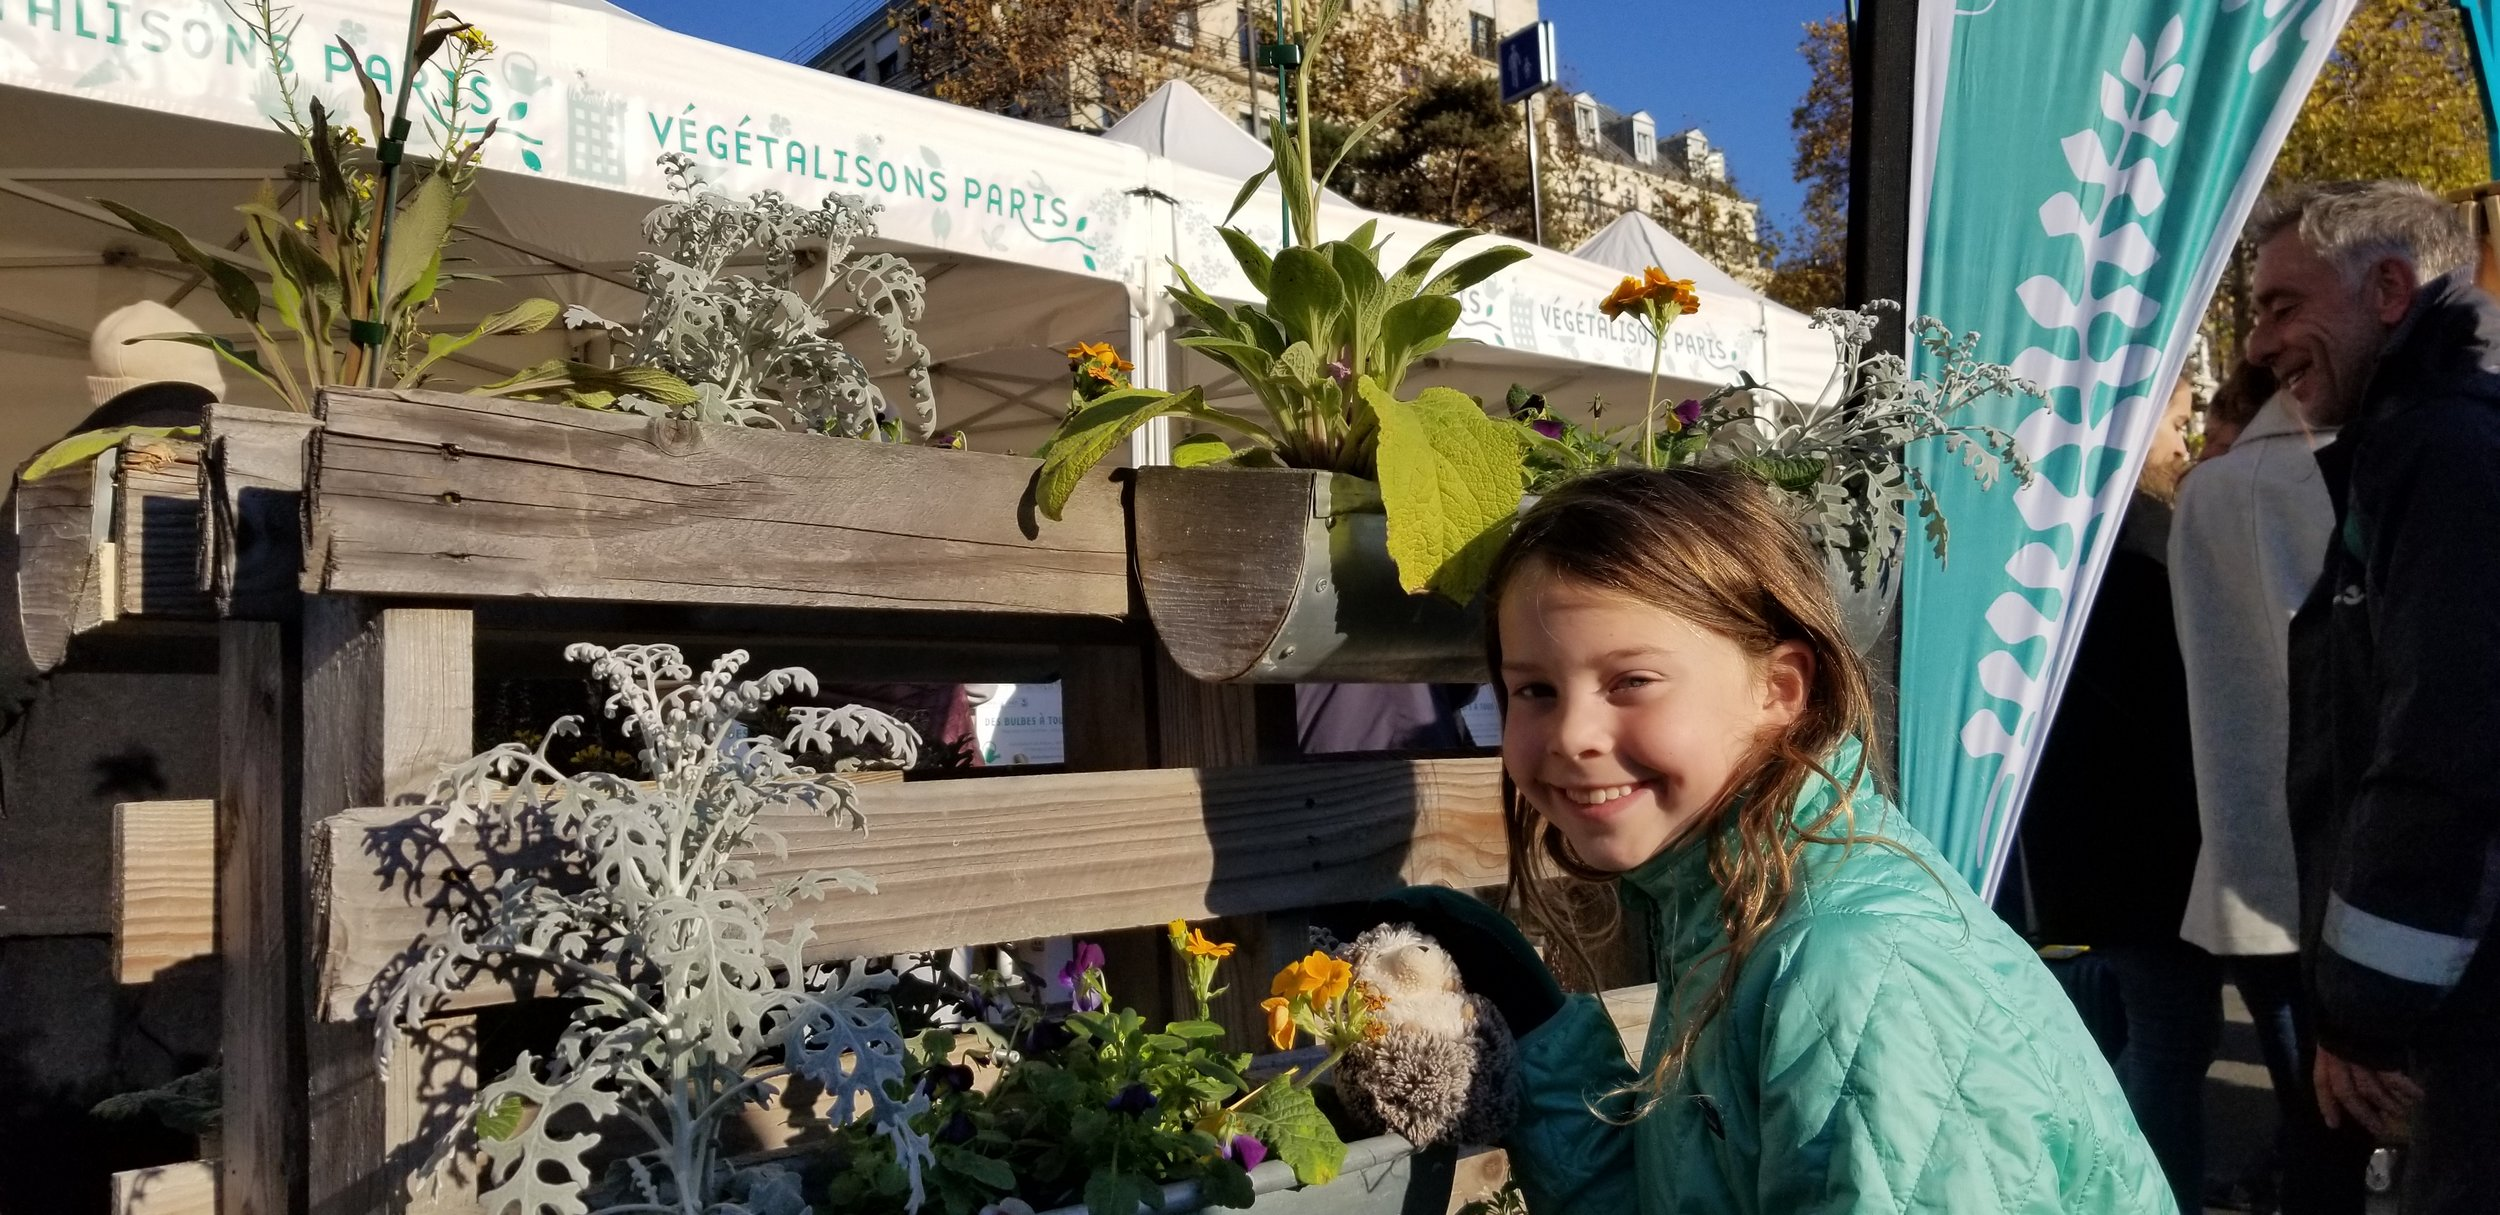 "How fun is this - they are giving away free plants, seeds and bulbs to anyone who stops by. This group ""Vegetalisons Paris"" wants everyone to have a few flowers and greenery in their lives."